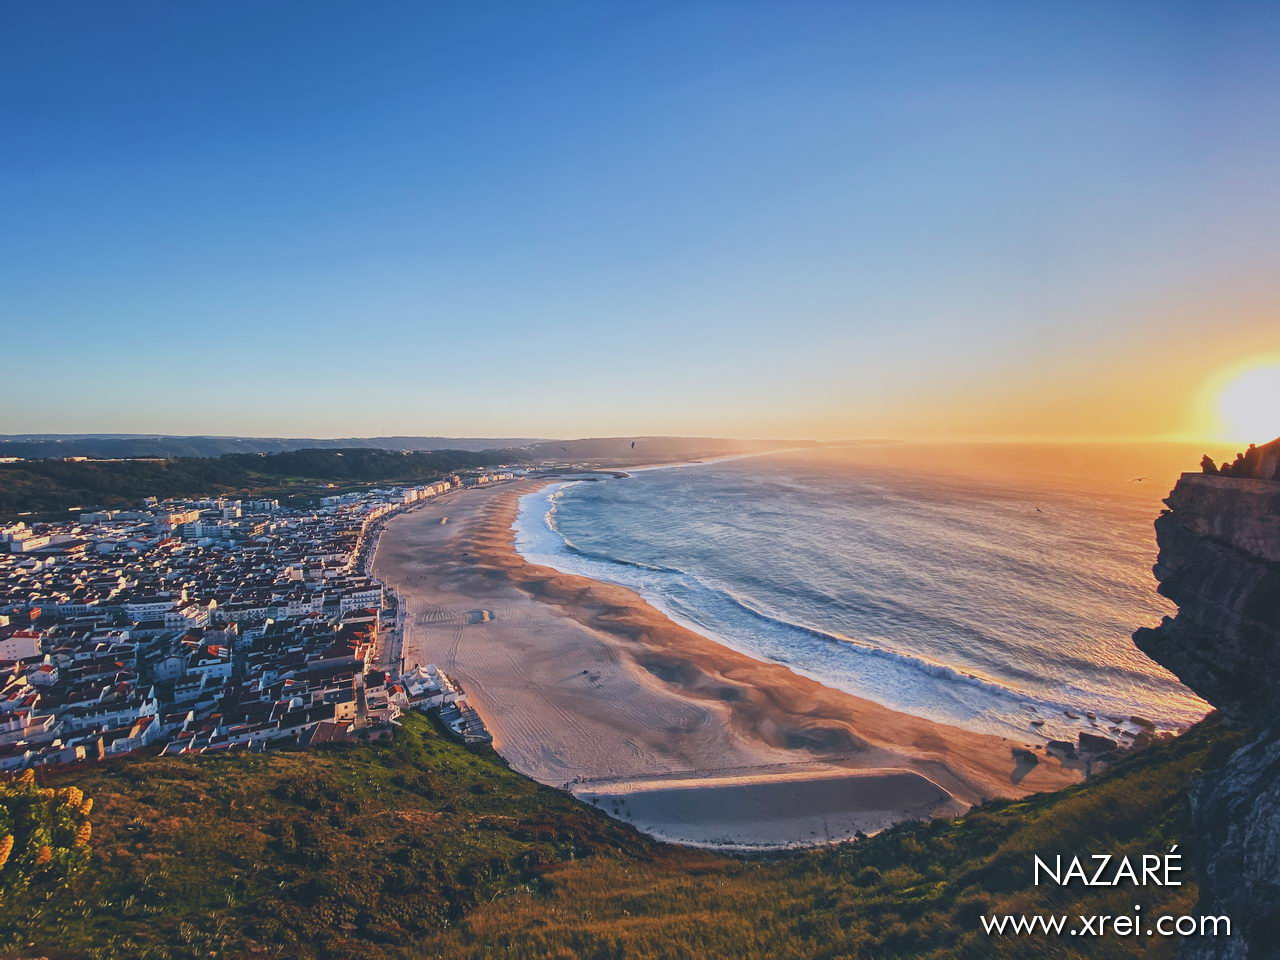 Nazaré was formerly a fishing village, located in the West of Lisbon. Nowadays it is a tourist destination for the beach, and one of the most famous giant wave surf spots in the world!